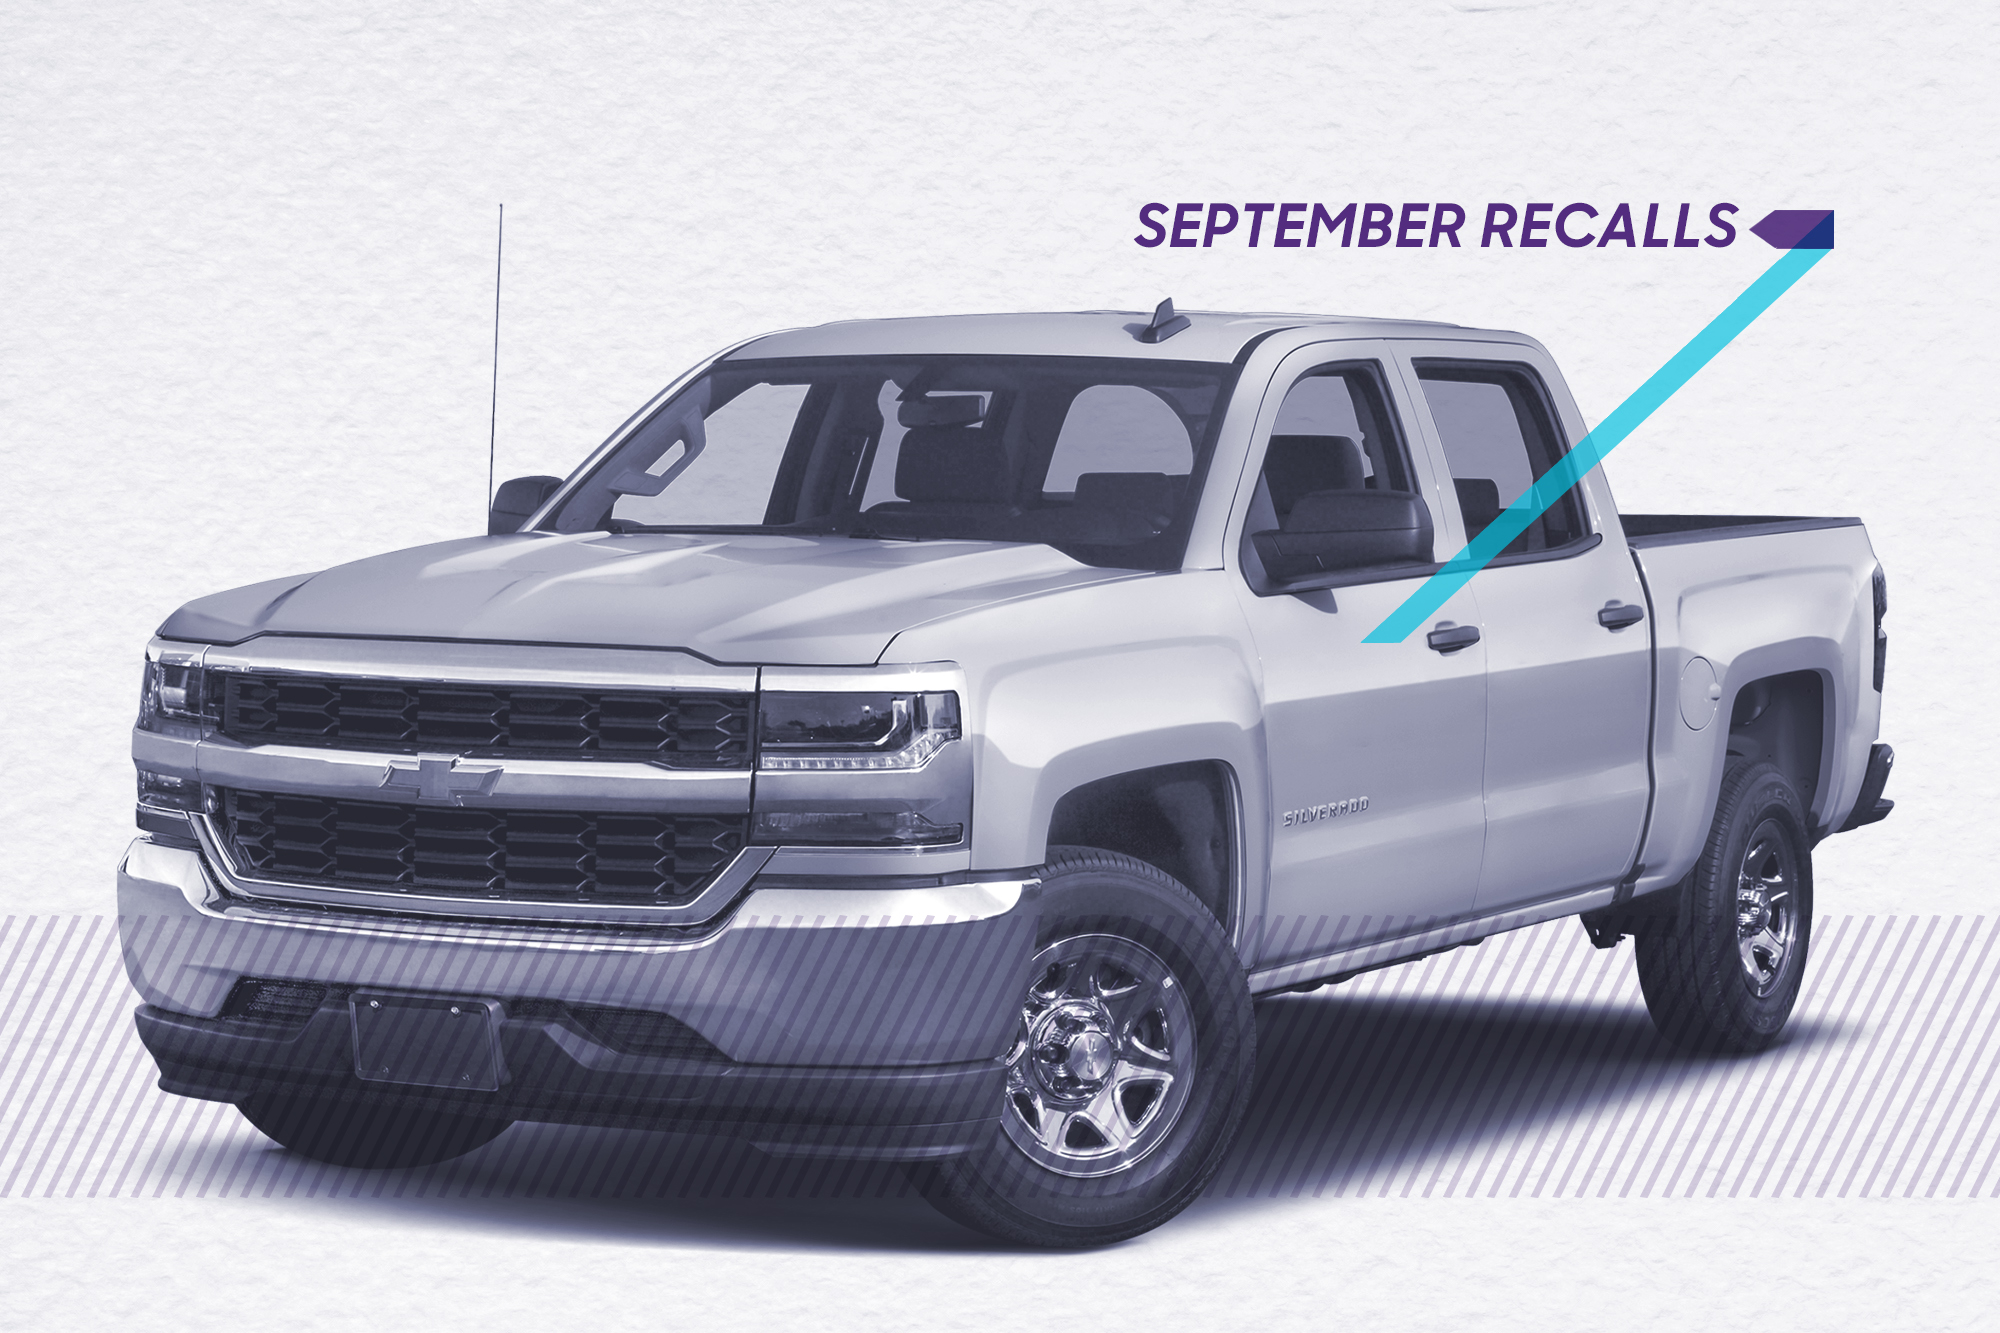 Recall Recap: The 5 Biggest Recalls in September 2019